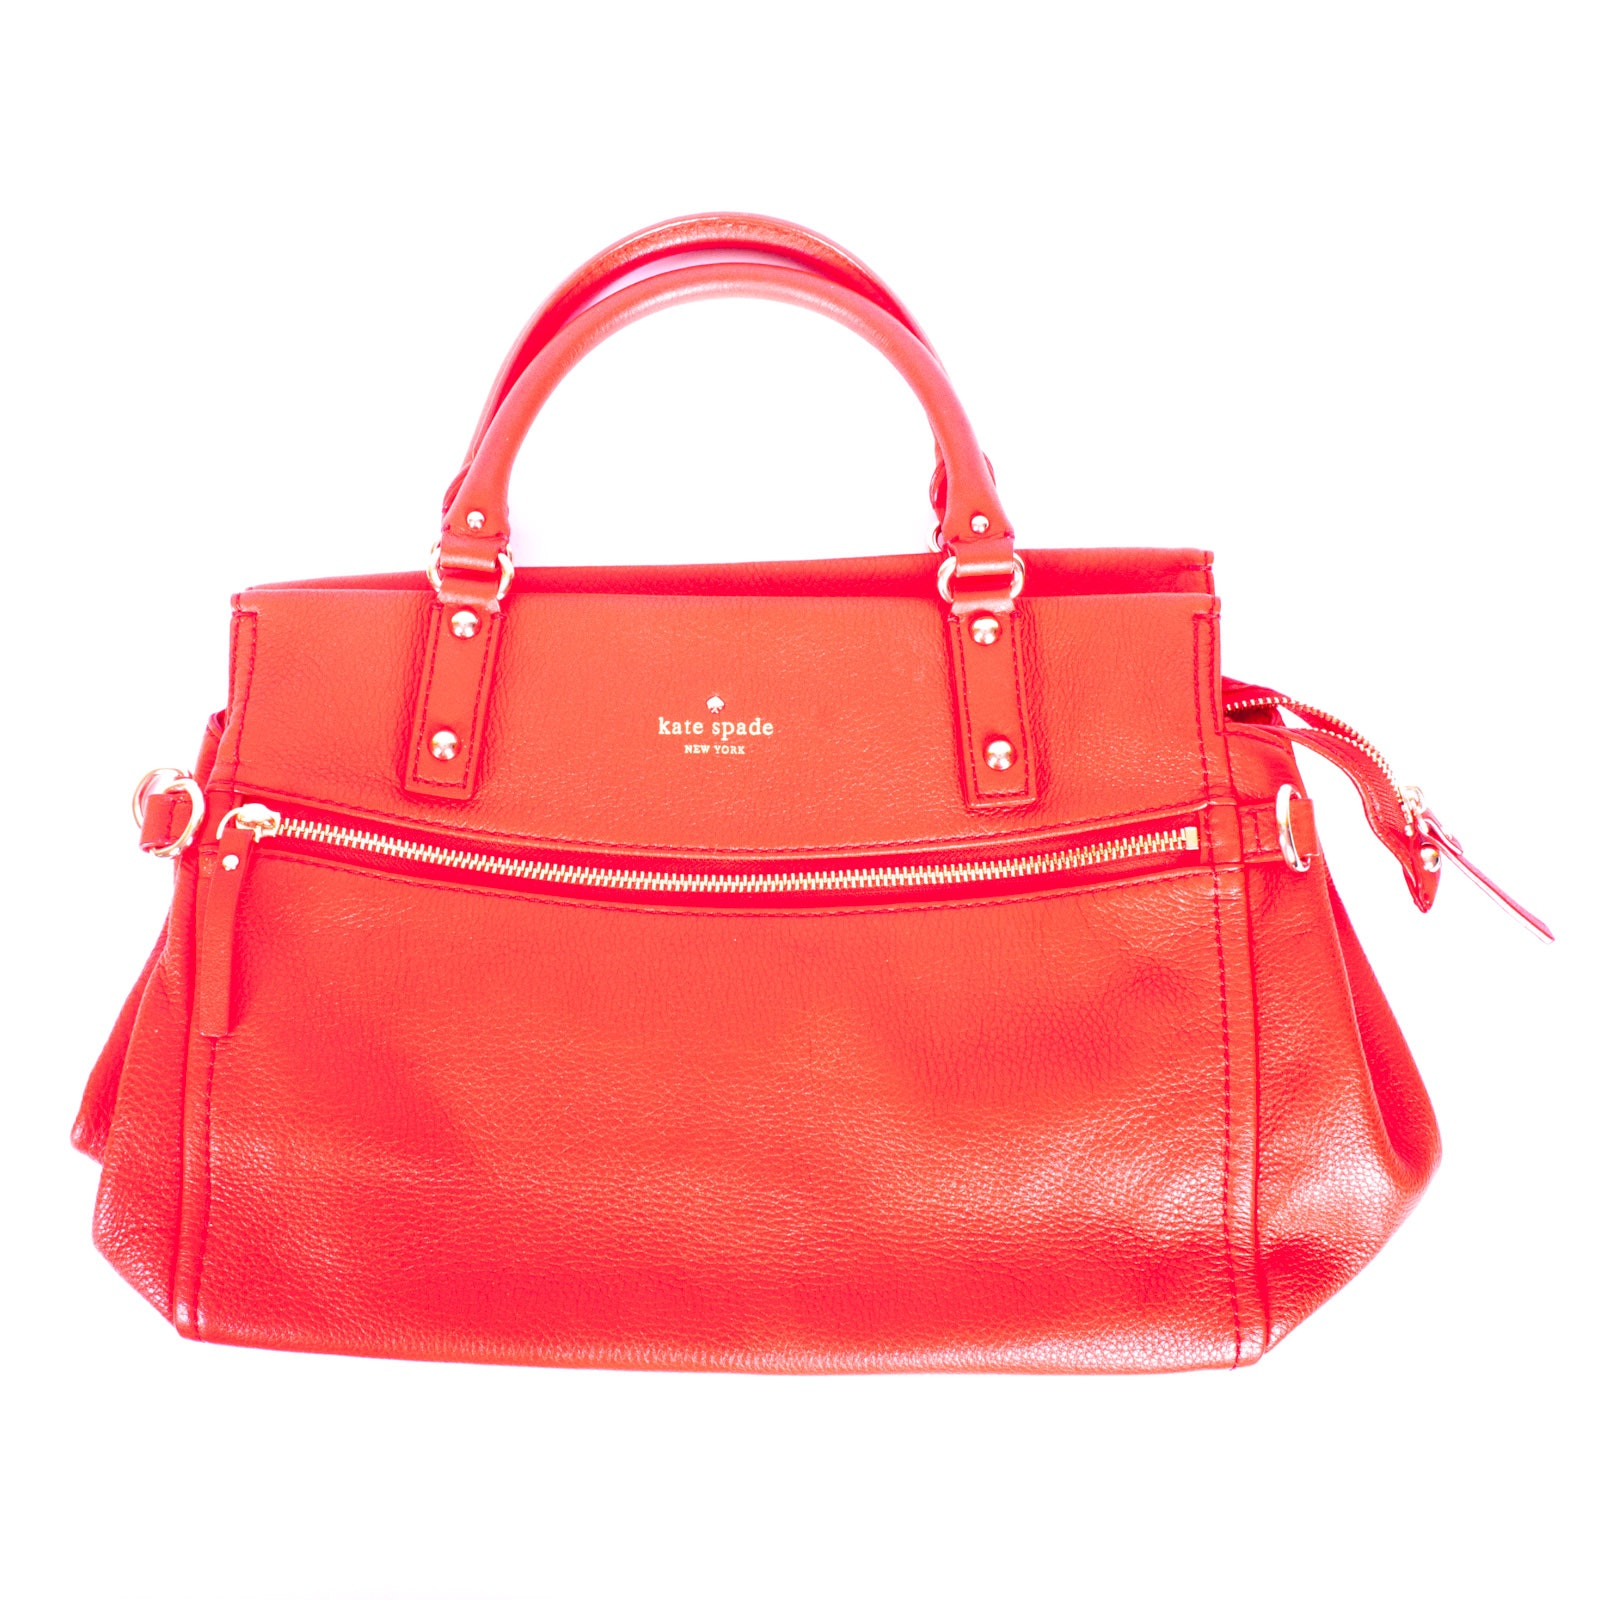 Kate Spade New York Red Leather Handbag